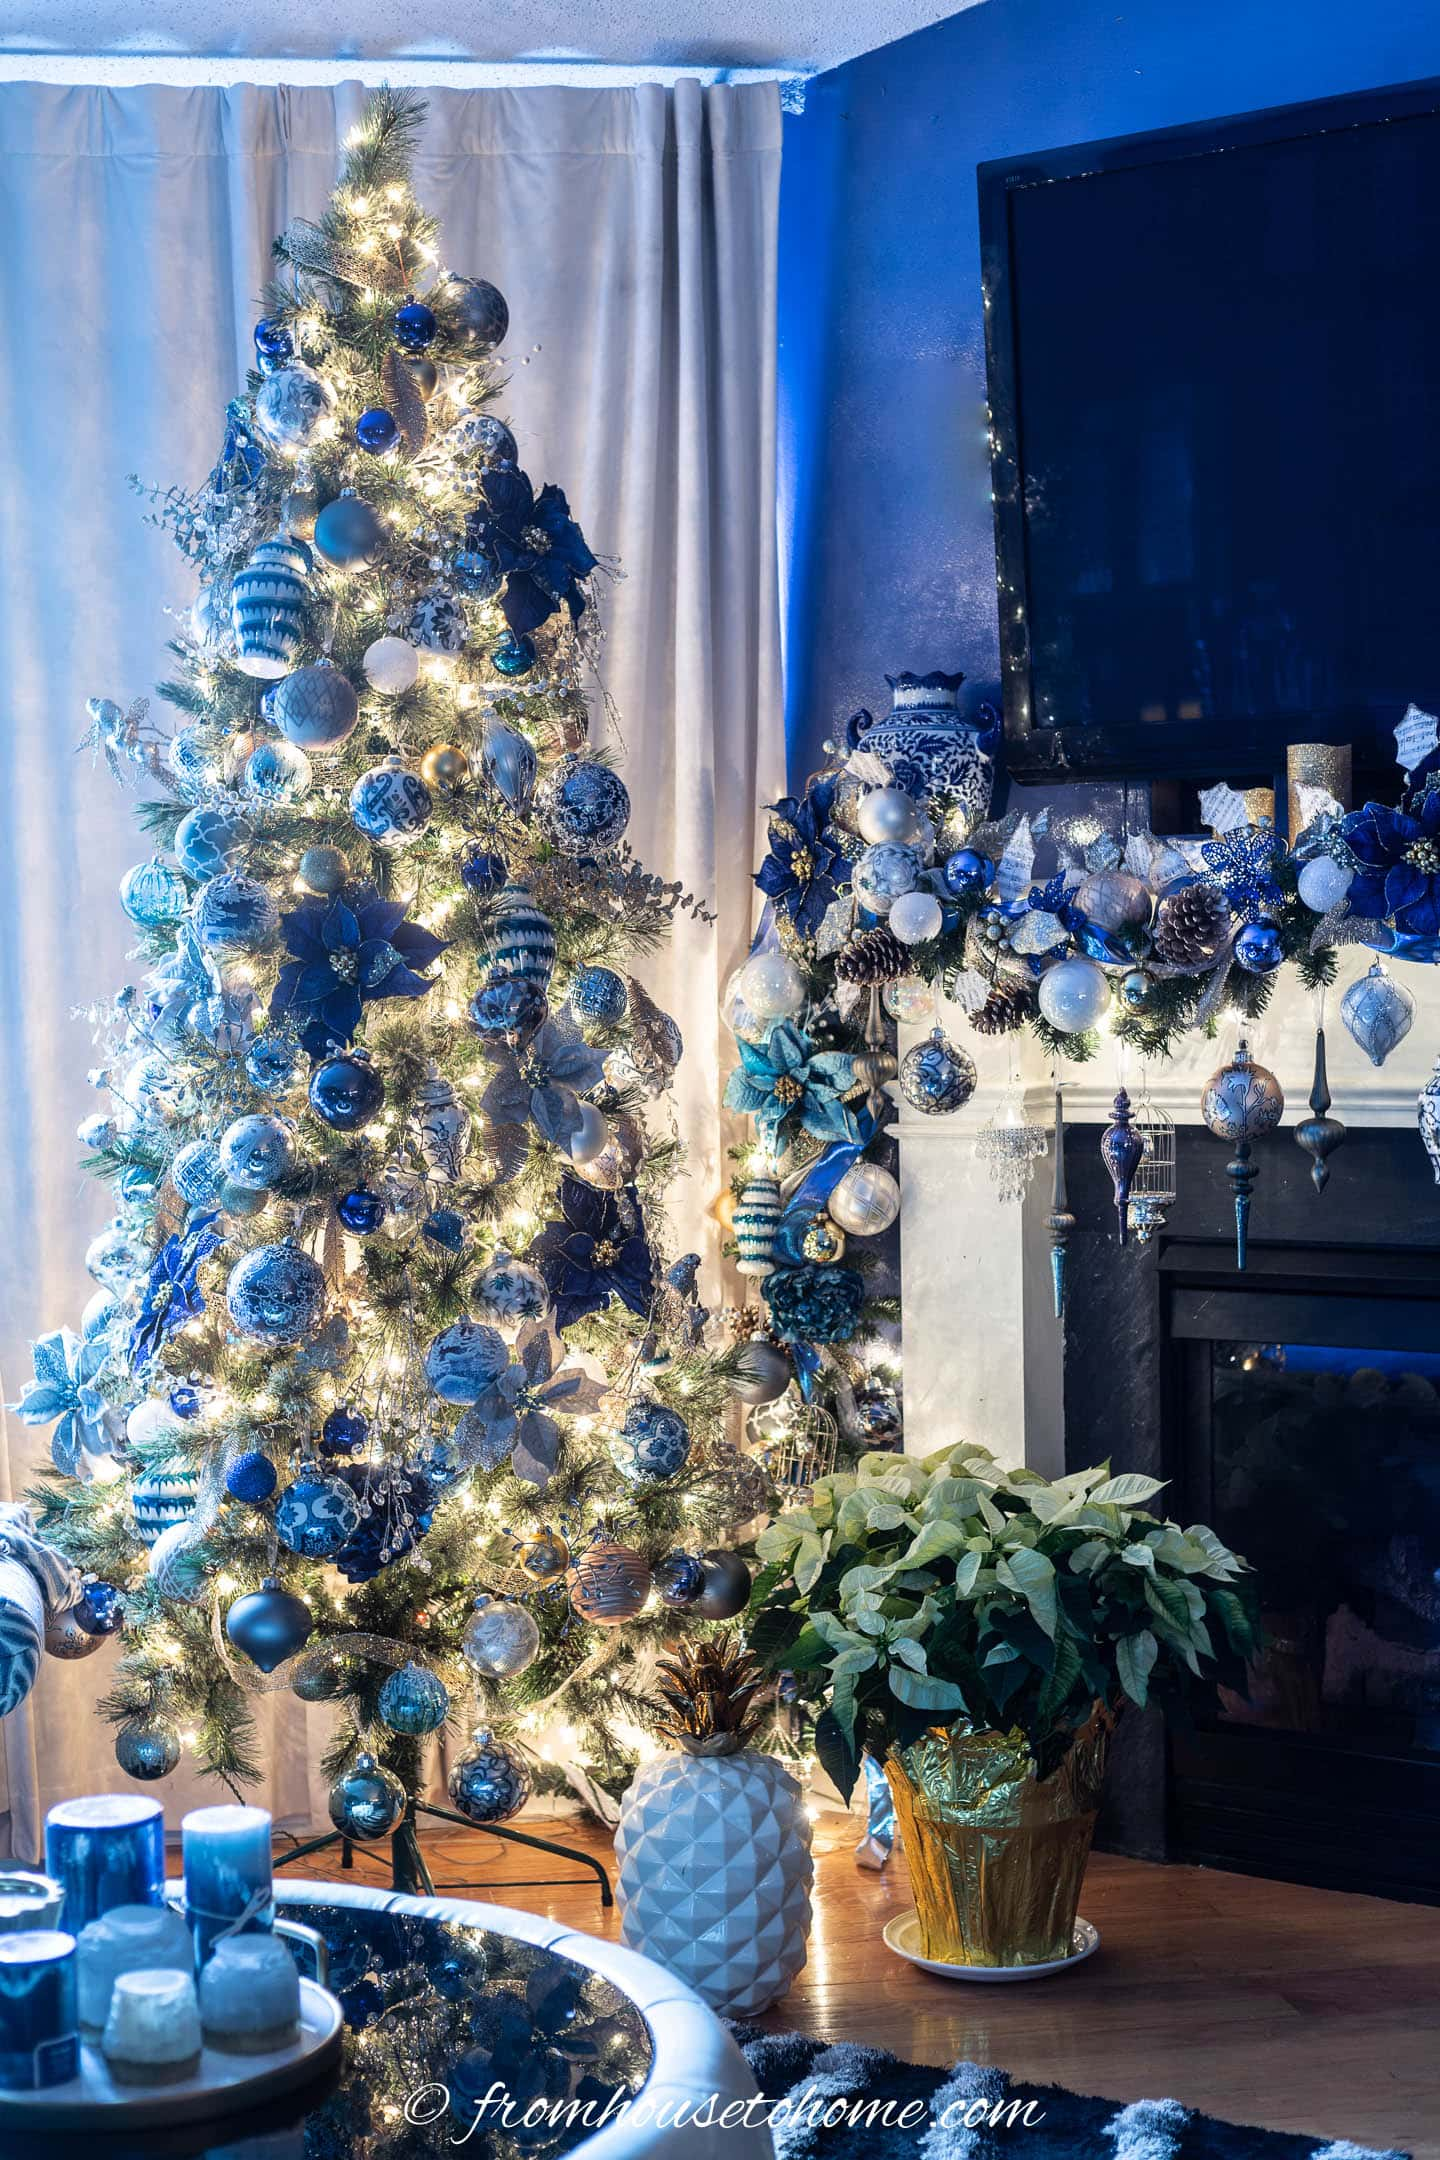 A TV over a fireplace mantel decorated with a garland and Christmas ornaments beside a blue and white Christmas tree